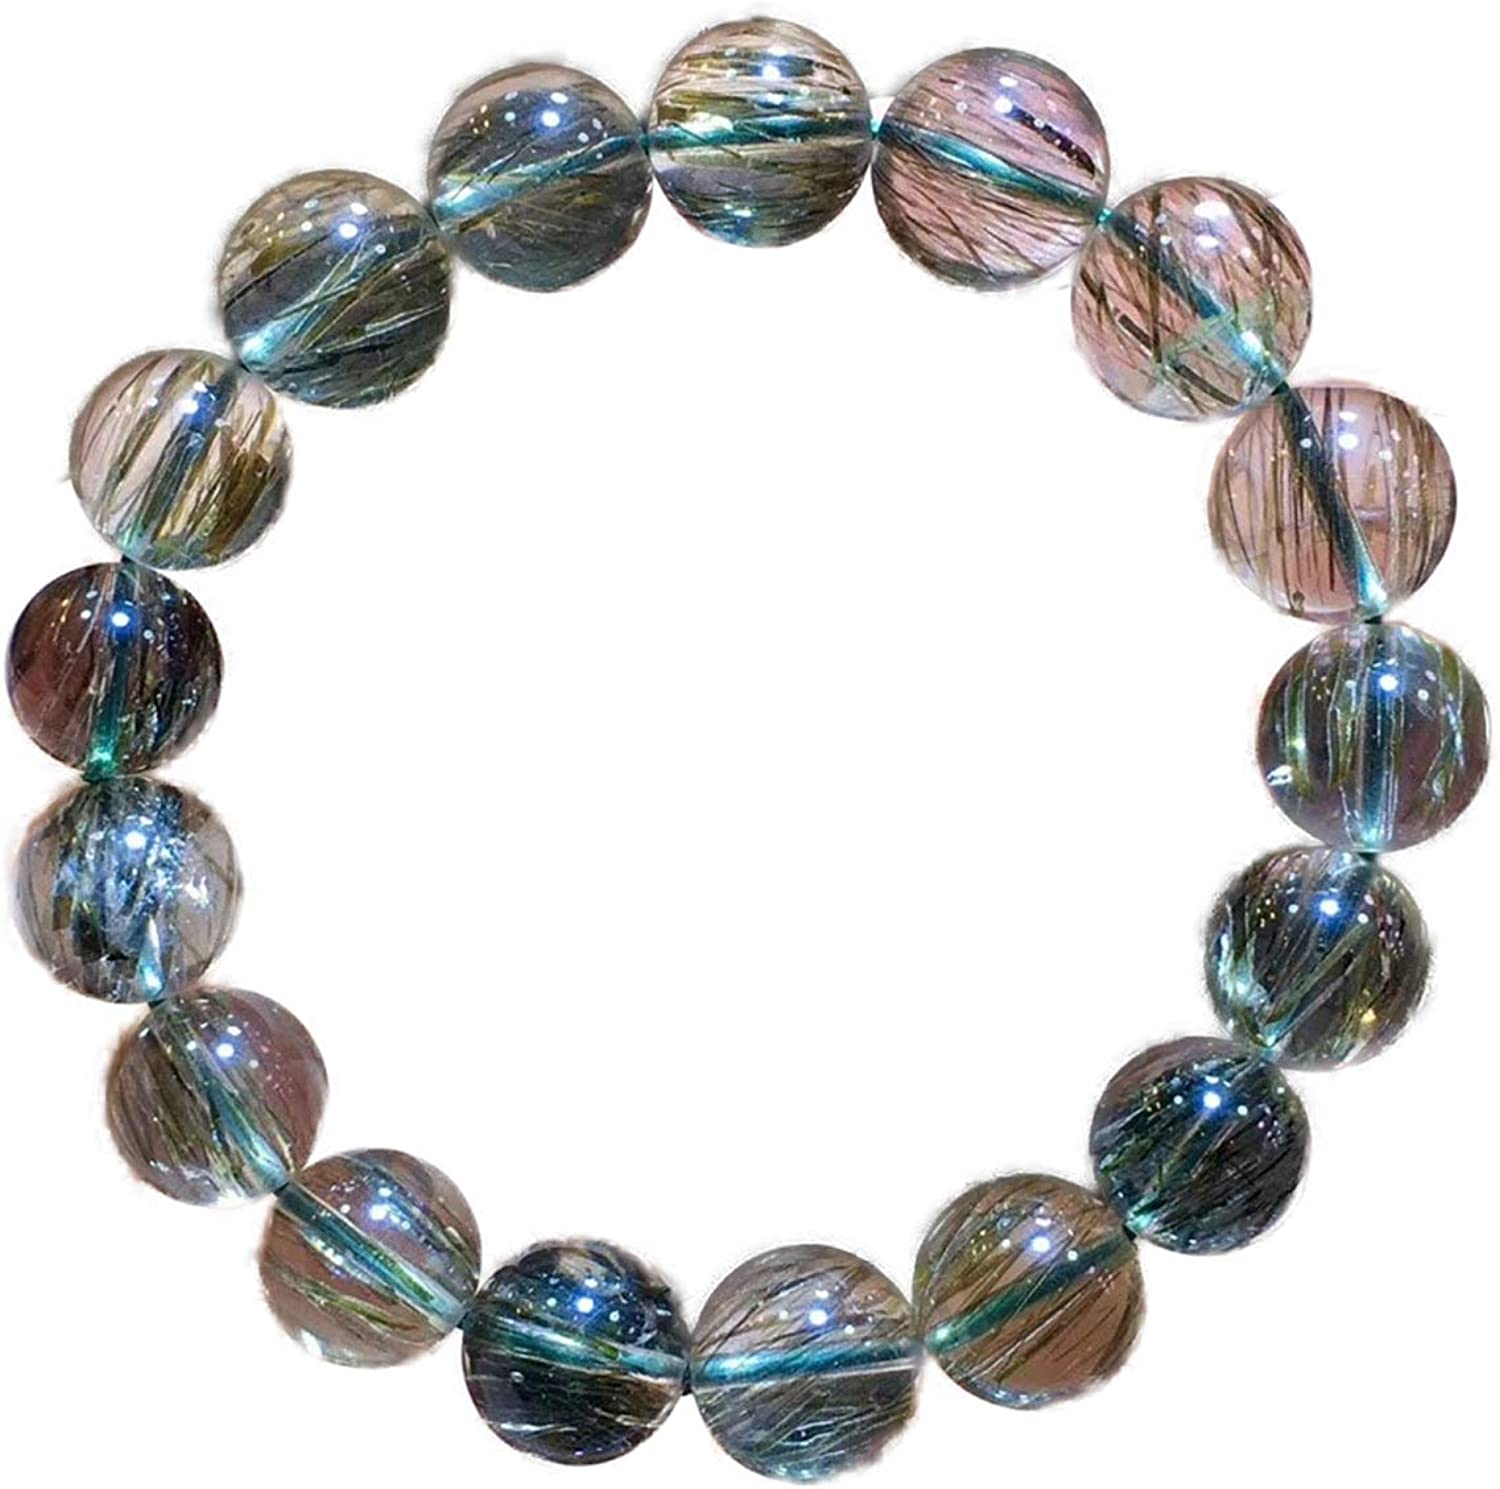 12mm Natural Green Tourmilated Rutilated Online limited product Quartz Crystal Ro Clear Max 41% OFF